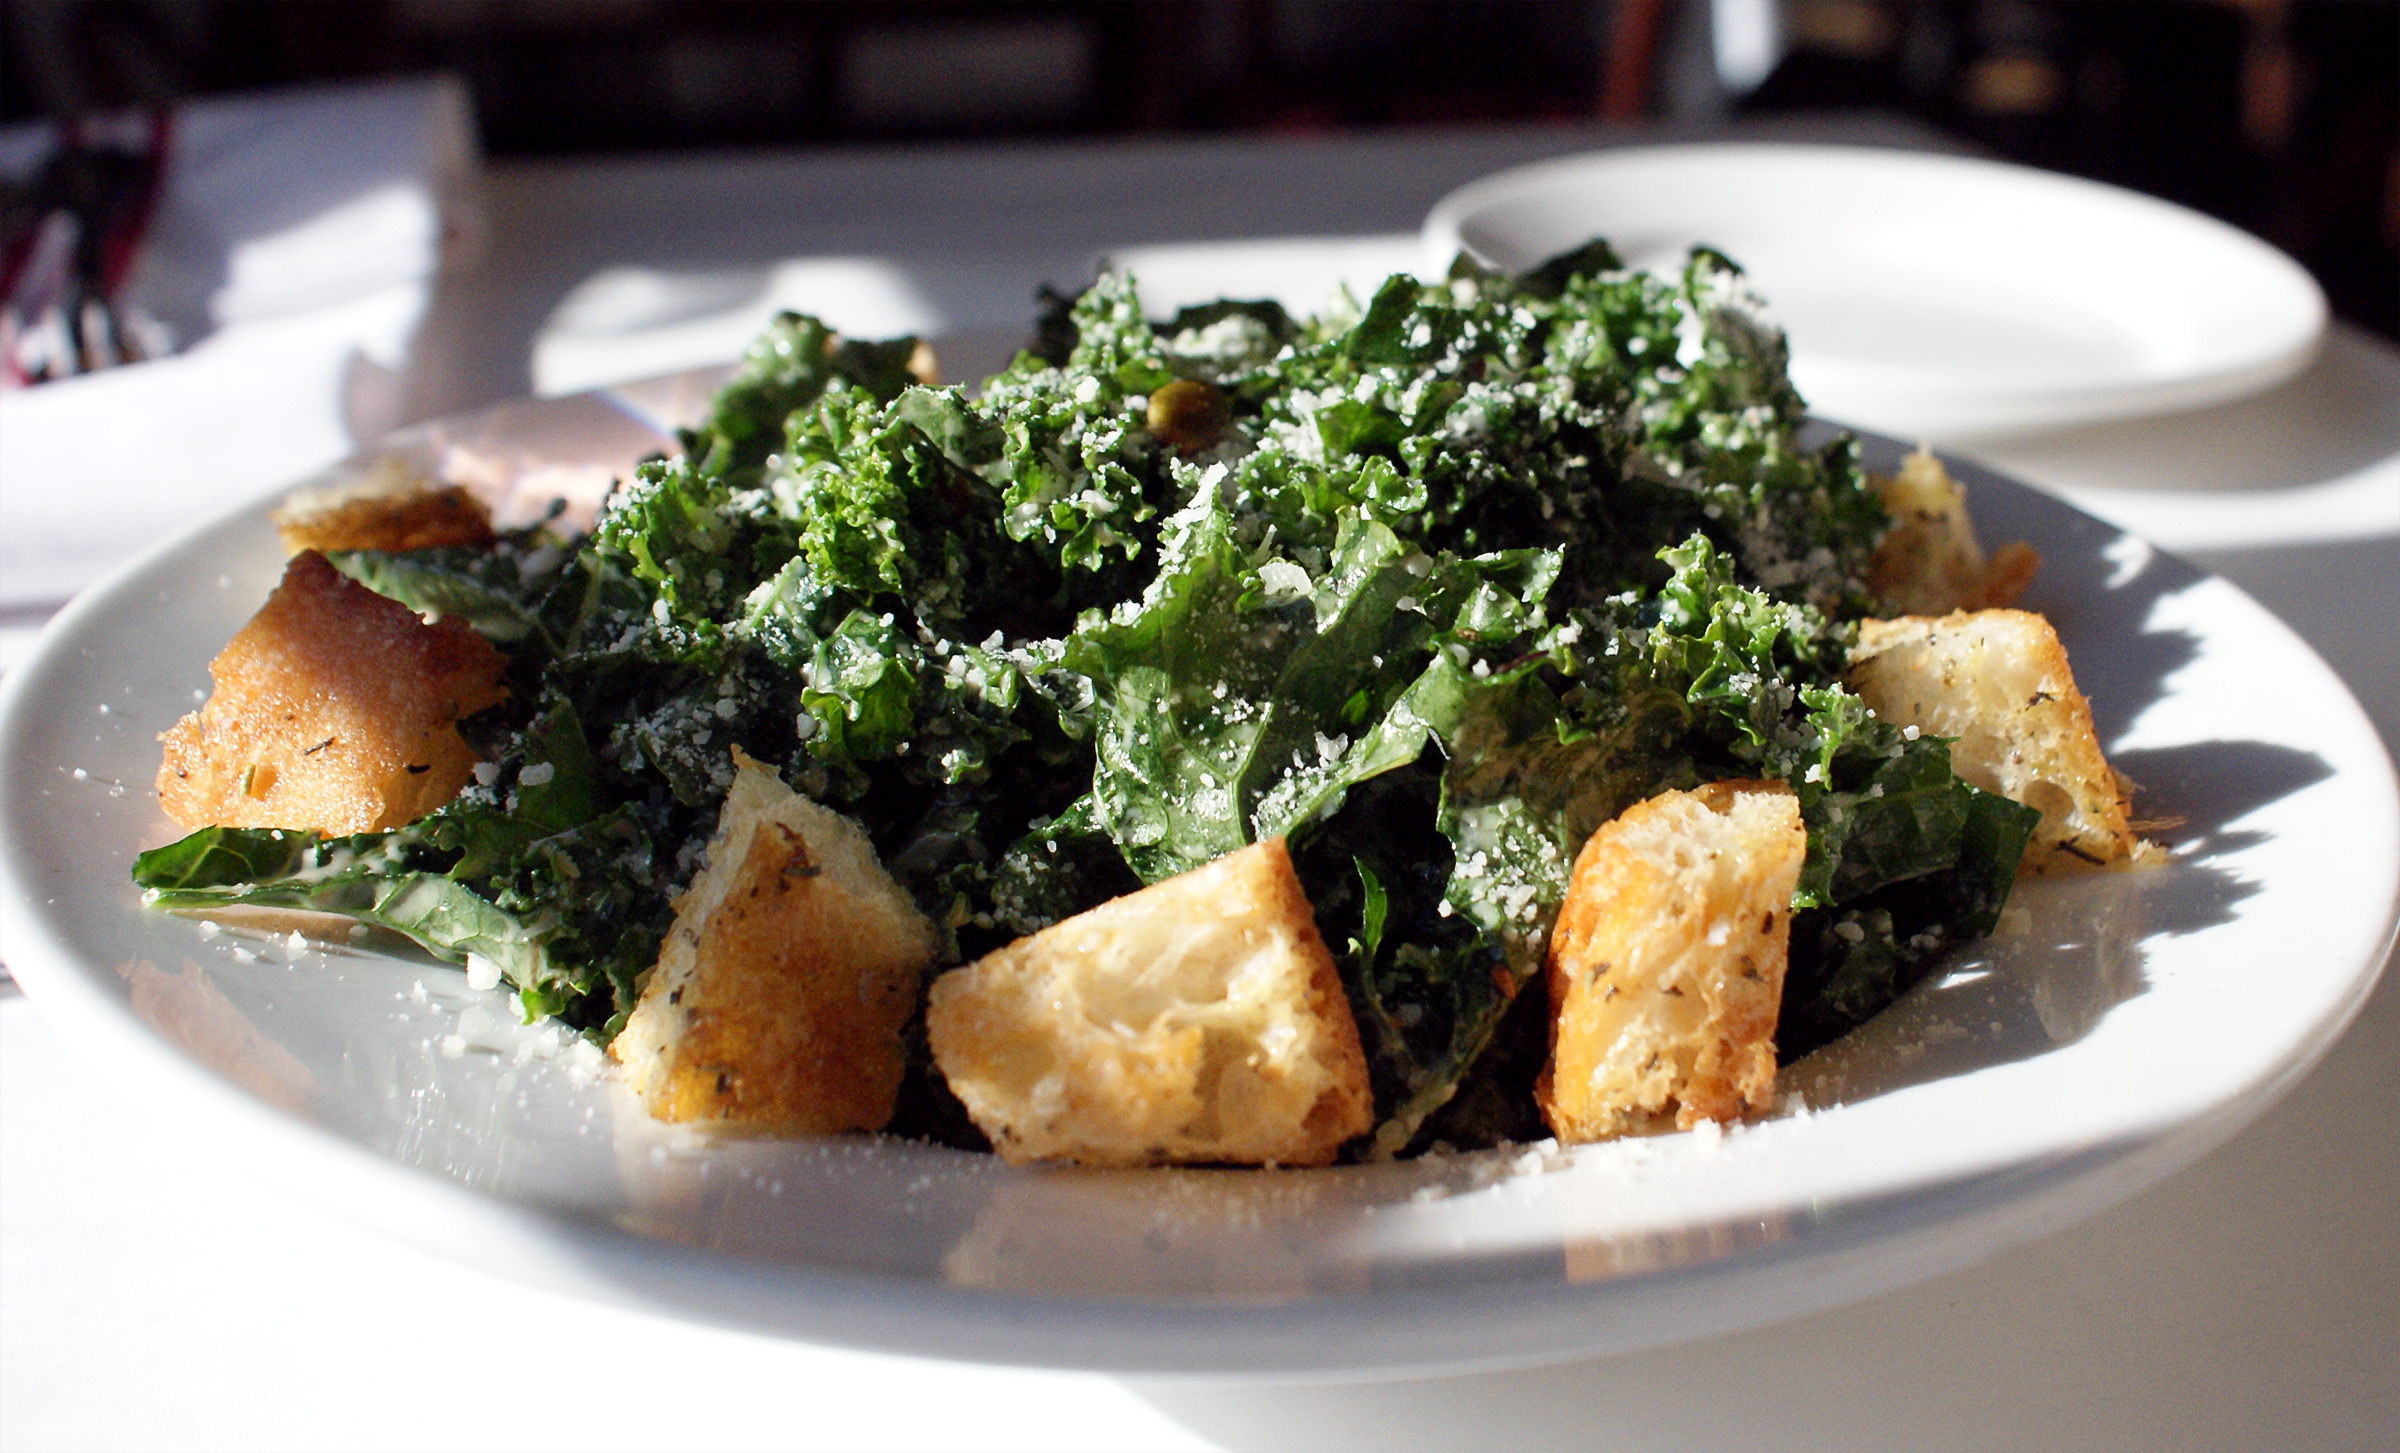 Kale Caesar Salad at Max's on Broad